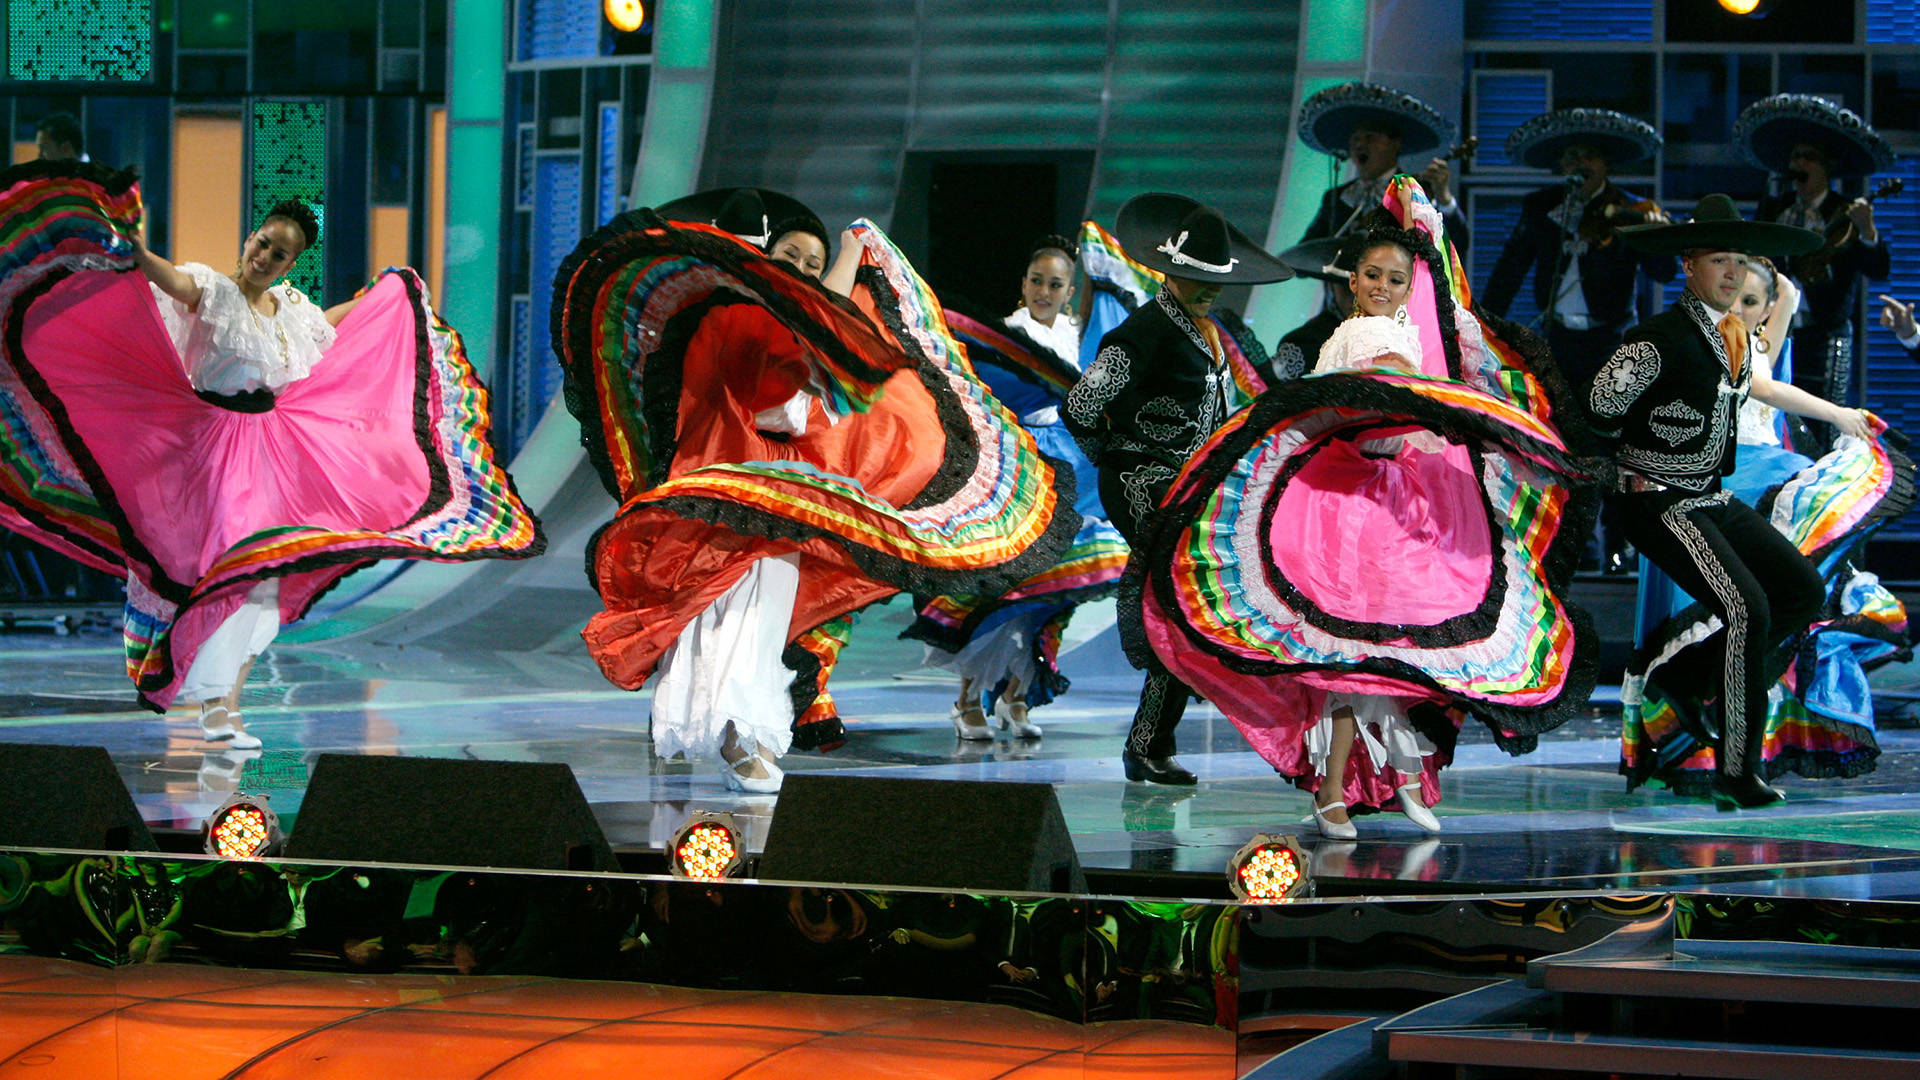 Mariachi Vargas perform onstage during the 9th annual Latin GRAMMY awards held at the Toyota Center on November 13, 2008 in Houston, Texas.   Kevin Winter/Getty Images